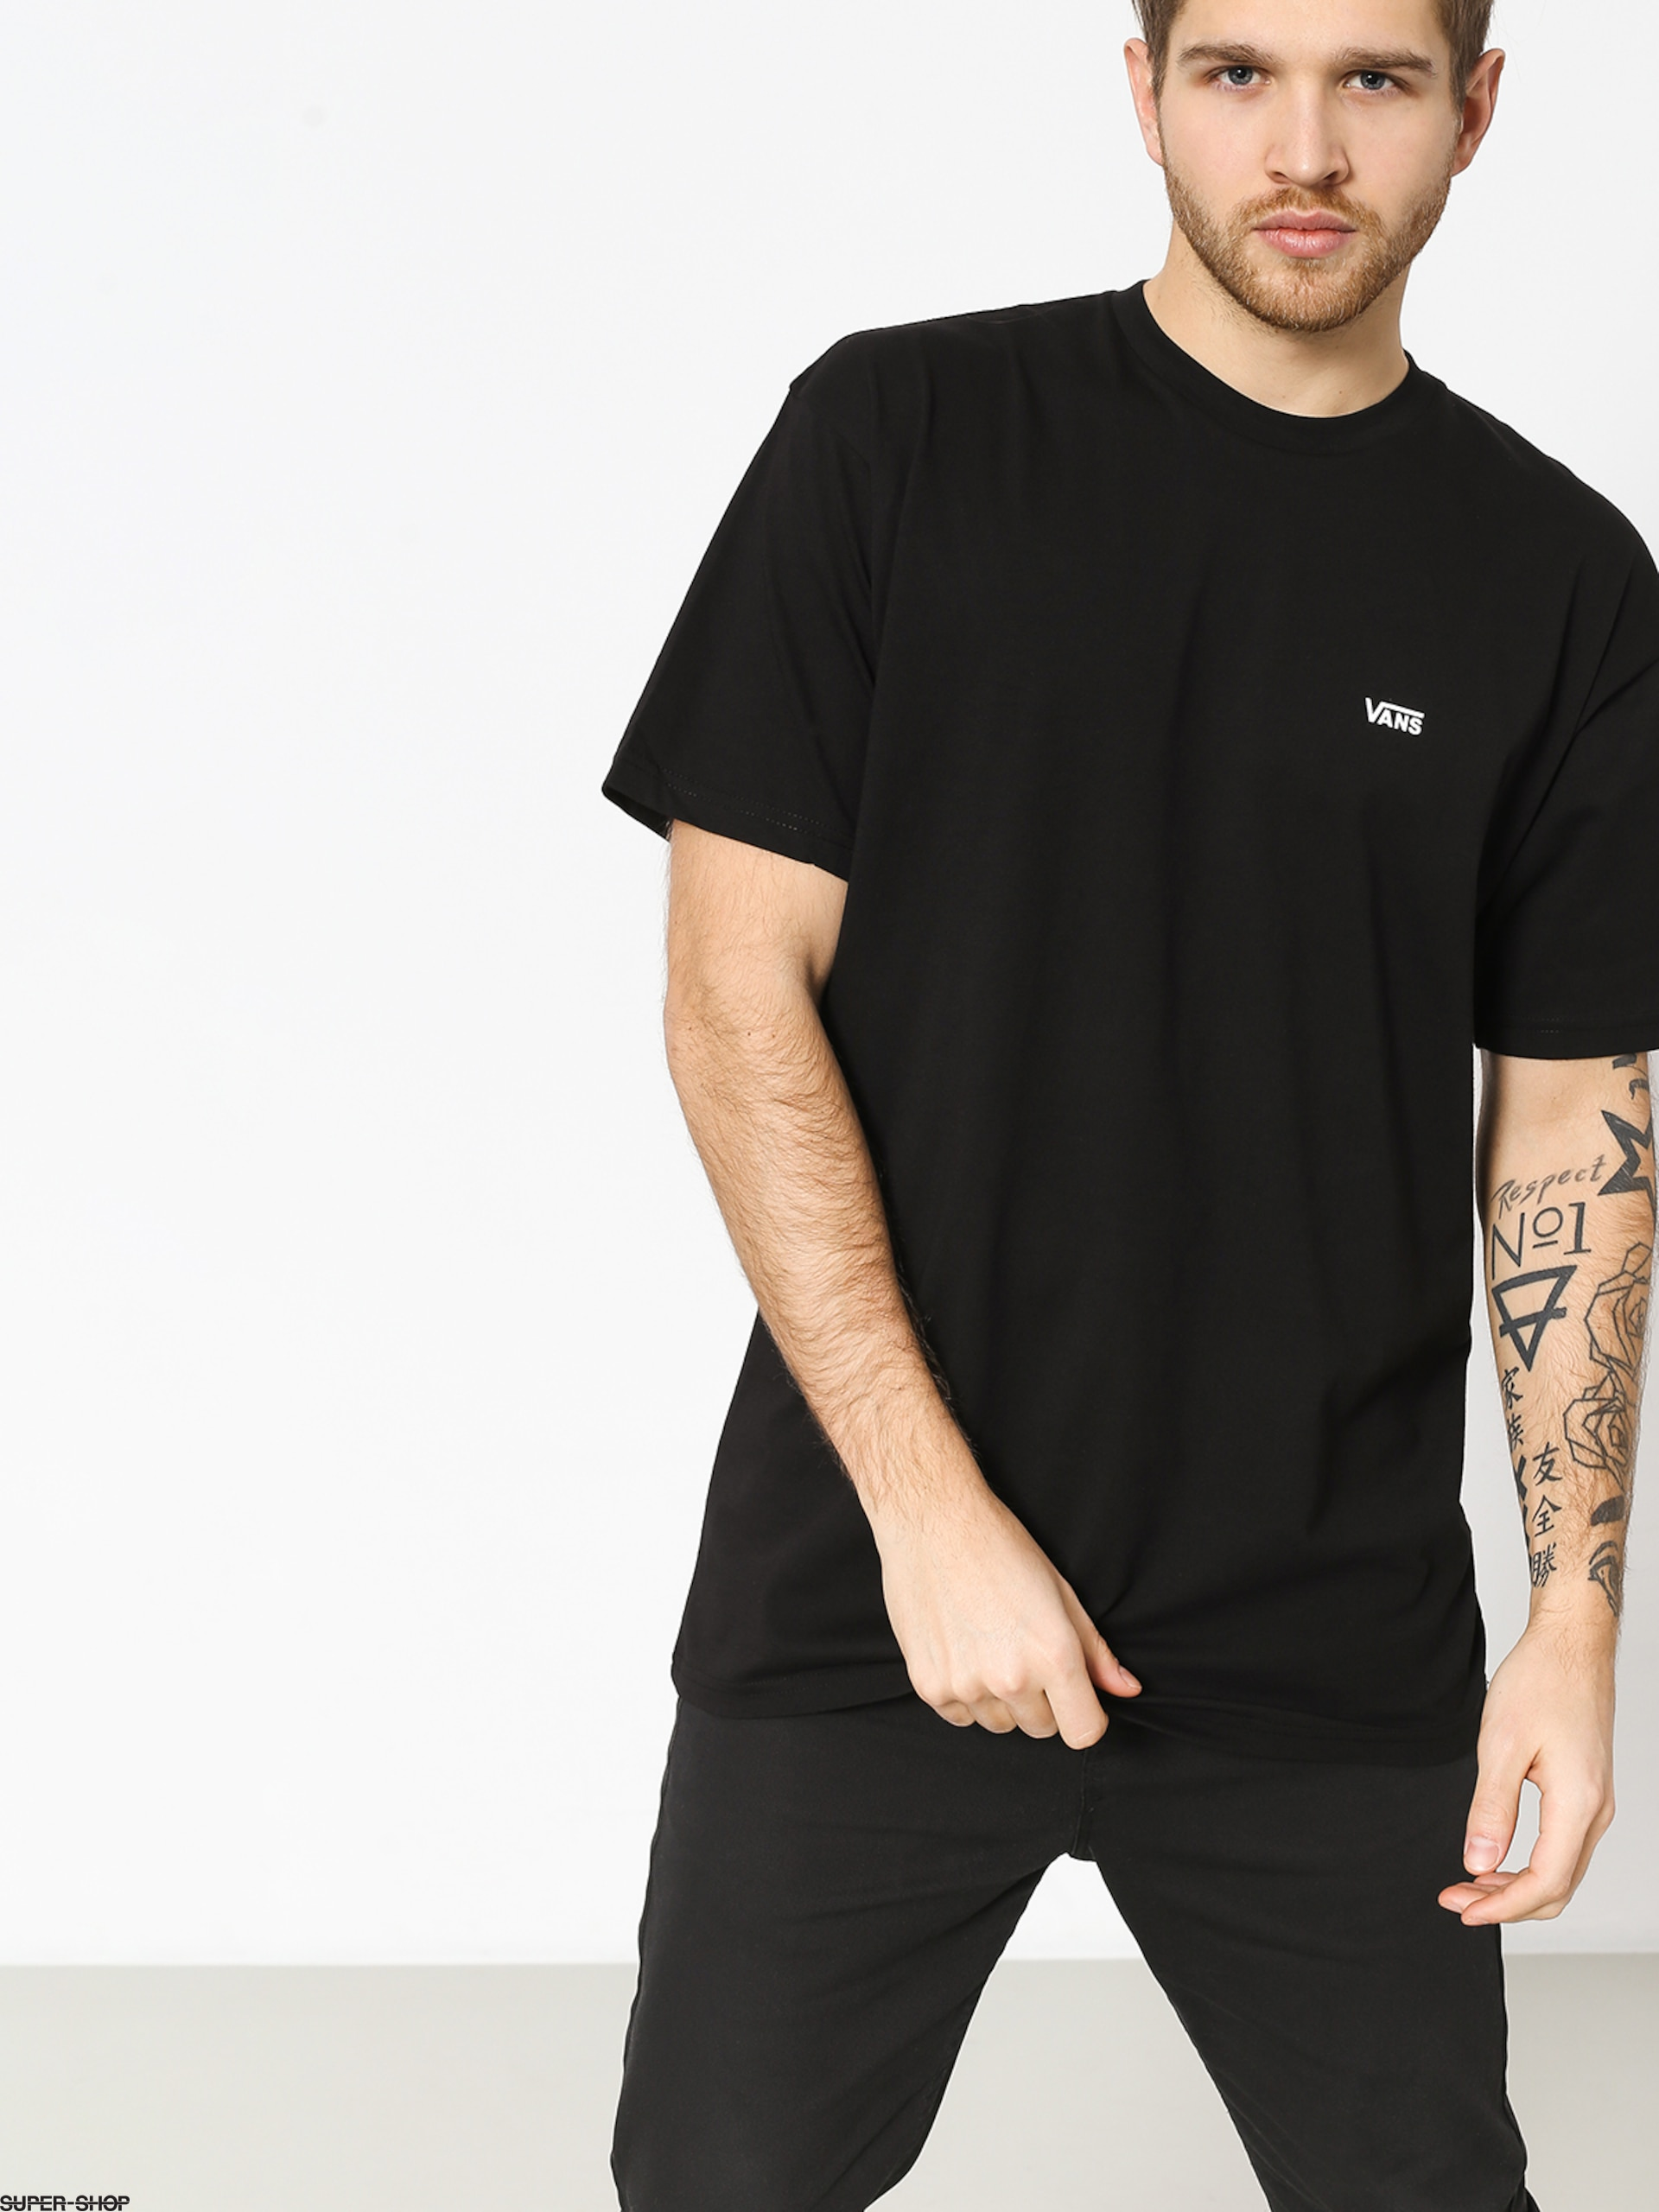 Vans Left Chest Logo T Shirt Black White